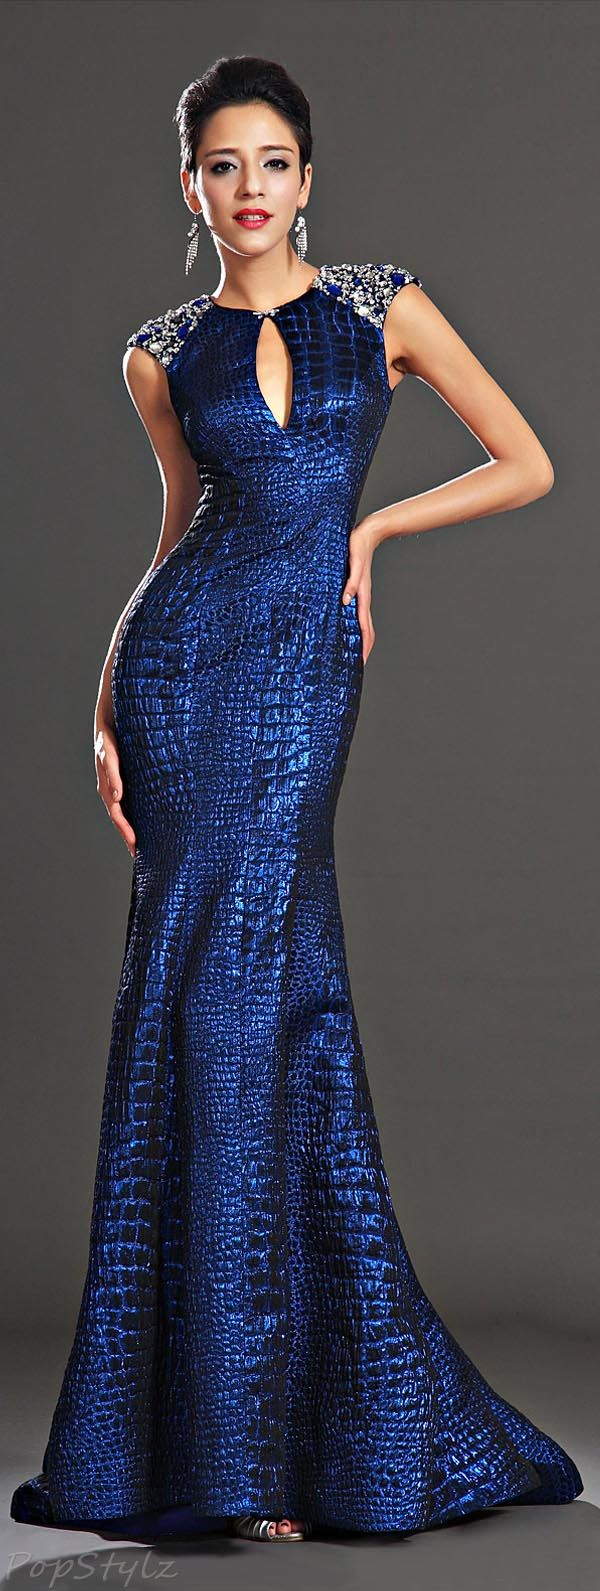 Sapphire Blue Evening Dress: I guess it's pretty obvious that cobalt is one of my favorite colors!